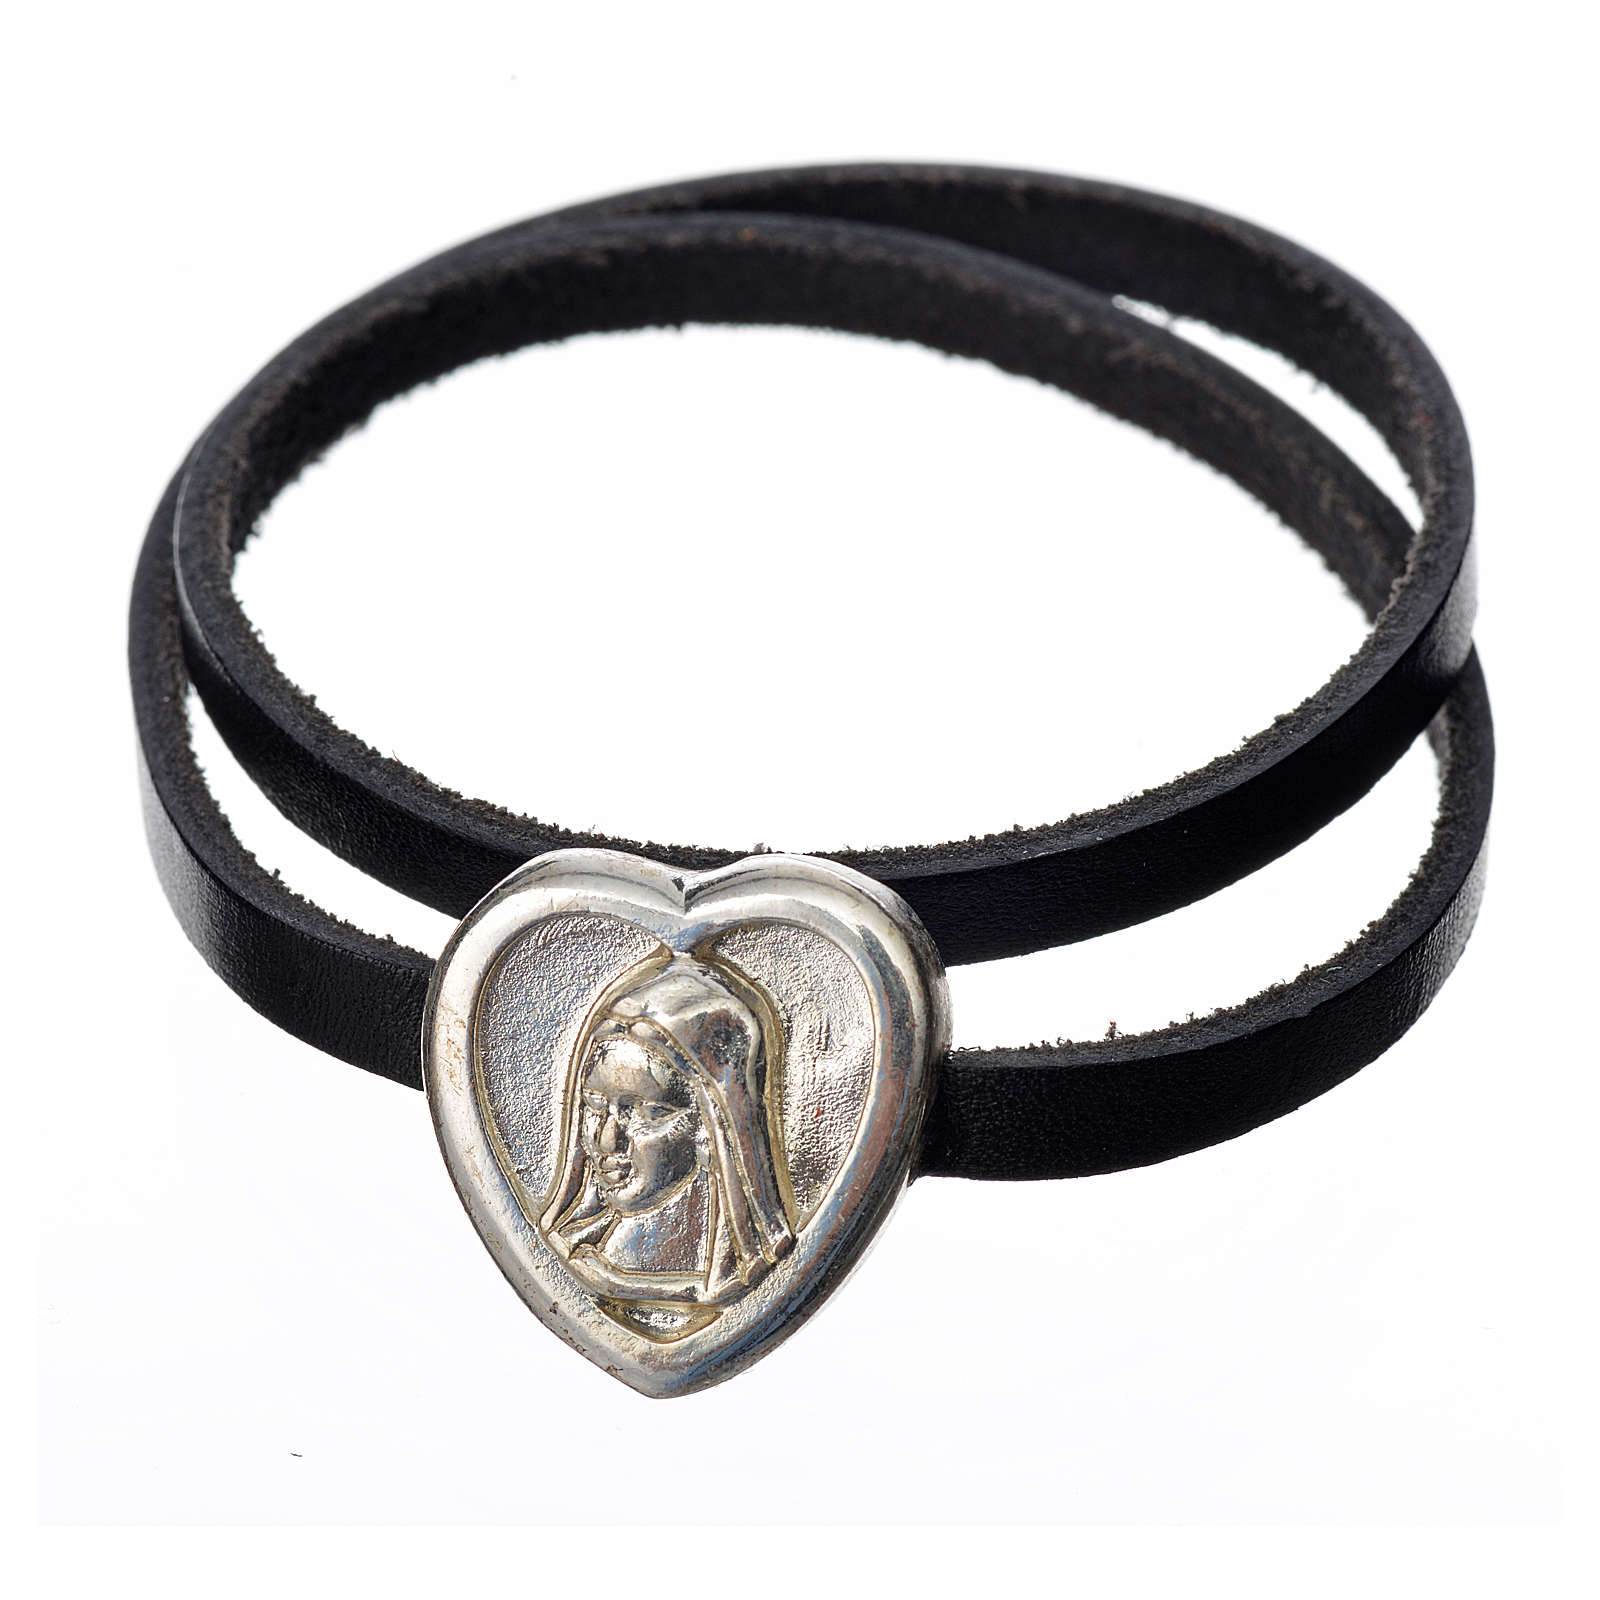 Choker necklace in black leather with Virgin Mary pendant 4